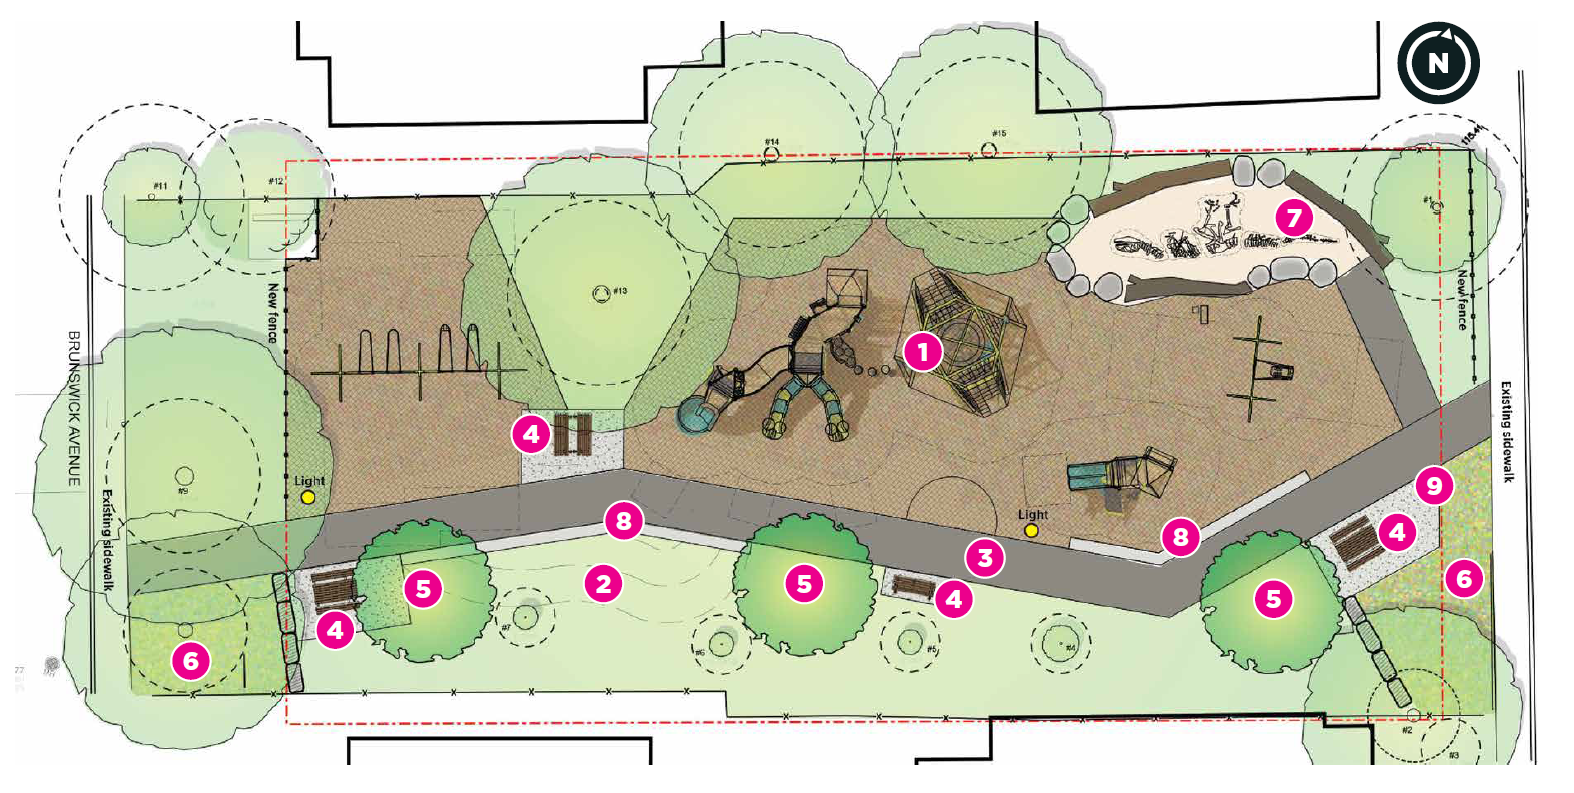 Rendering of the playground upgrades, as described following the image.